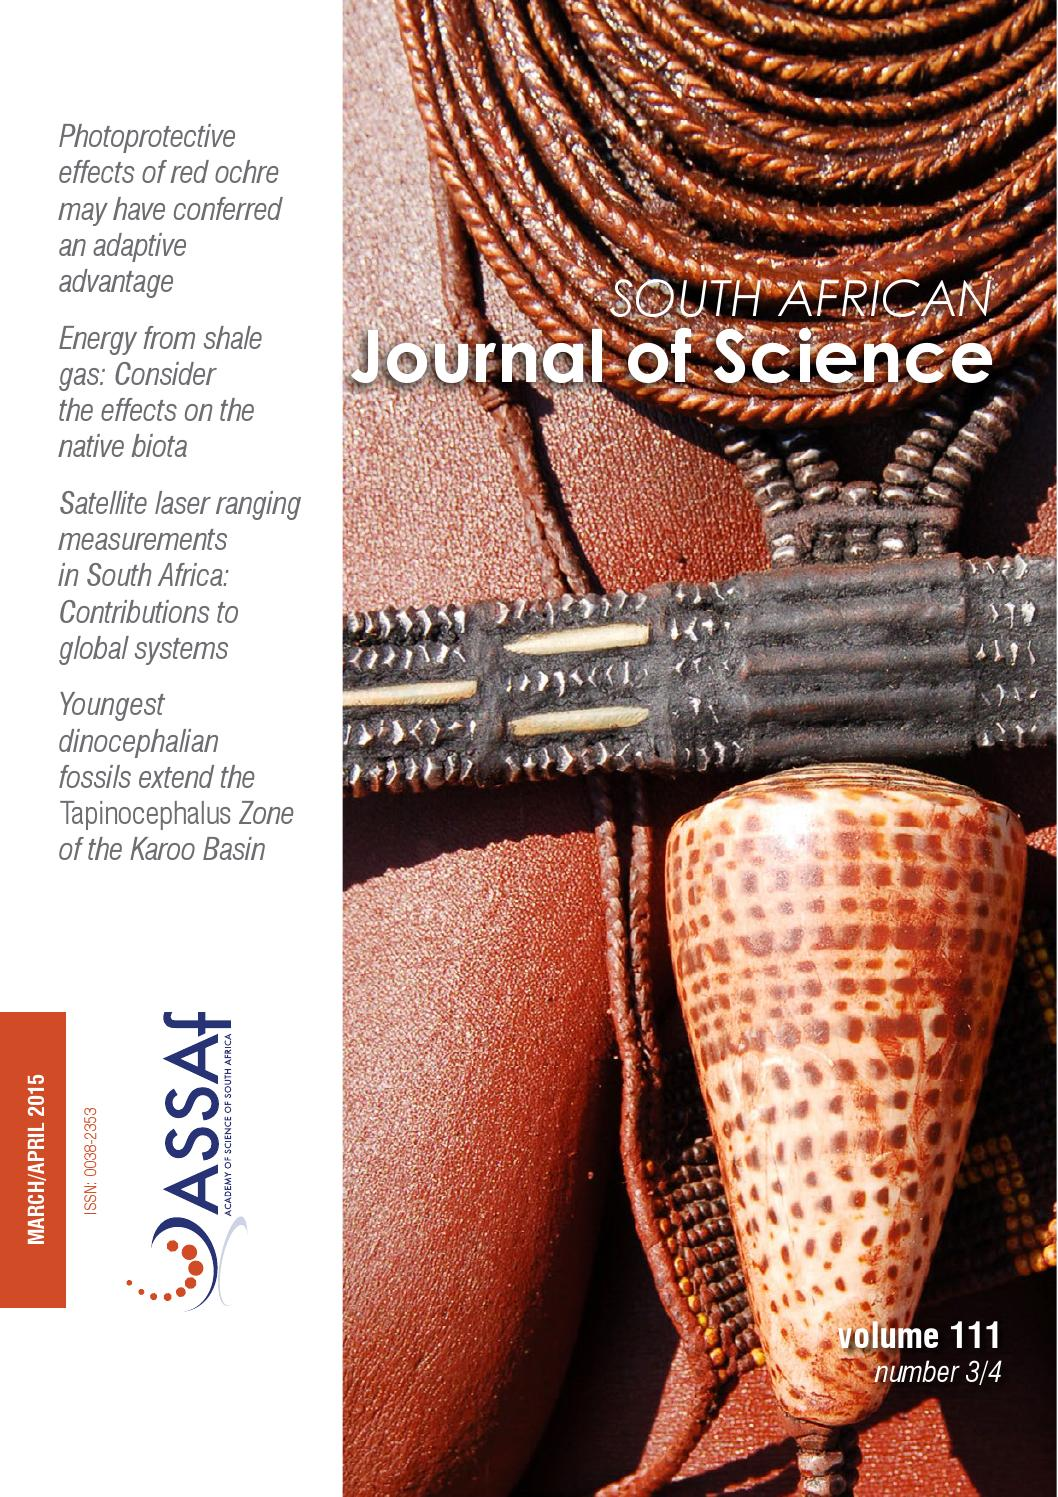 South African Journal Of Science Volume 111 Issue 3 4 By Rodin Coil Wiring Diagram Issuu